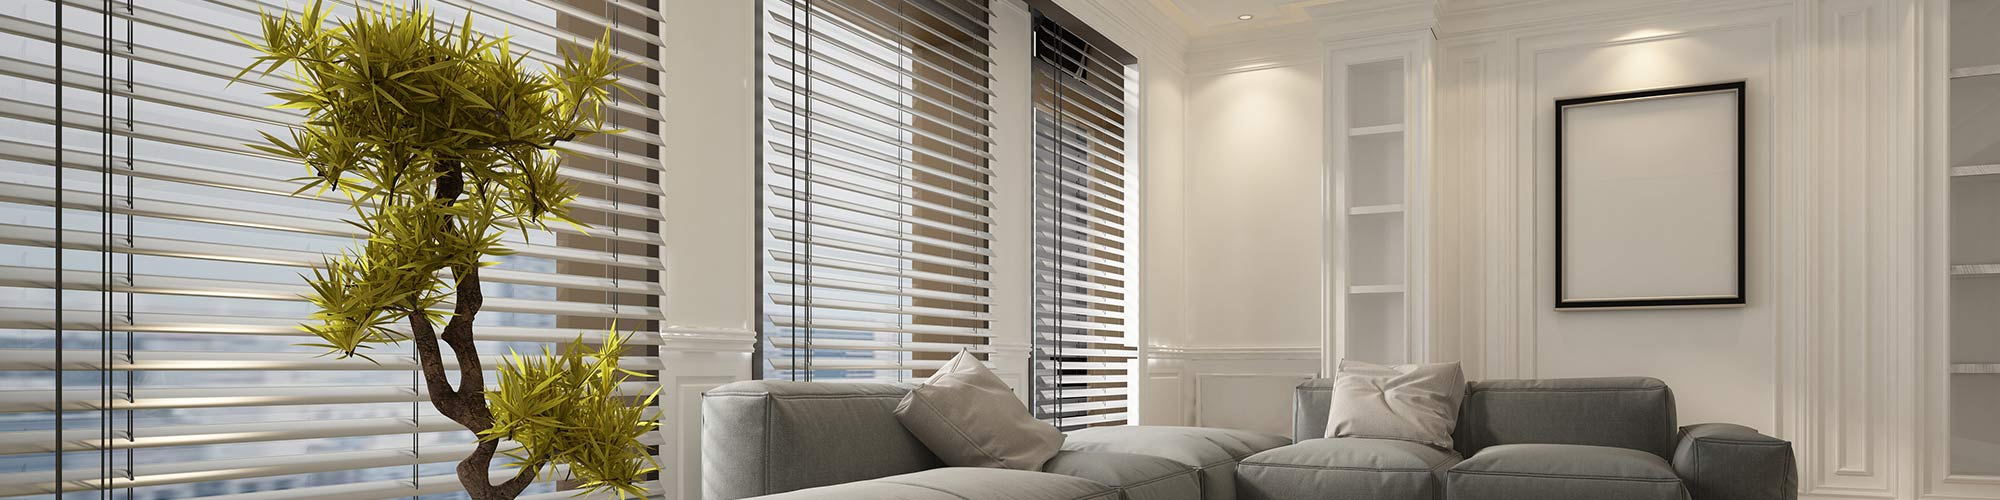 Wide Range Of Venetian Blinds South Coast Blinds